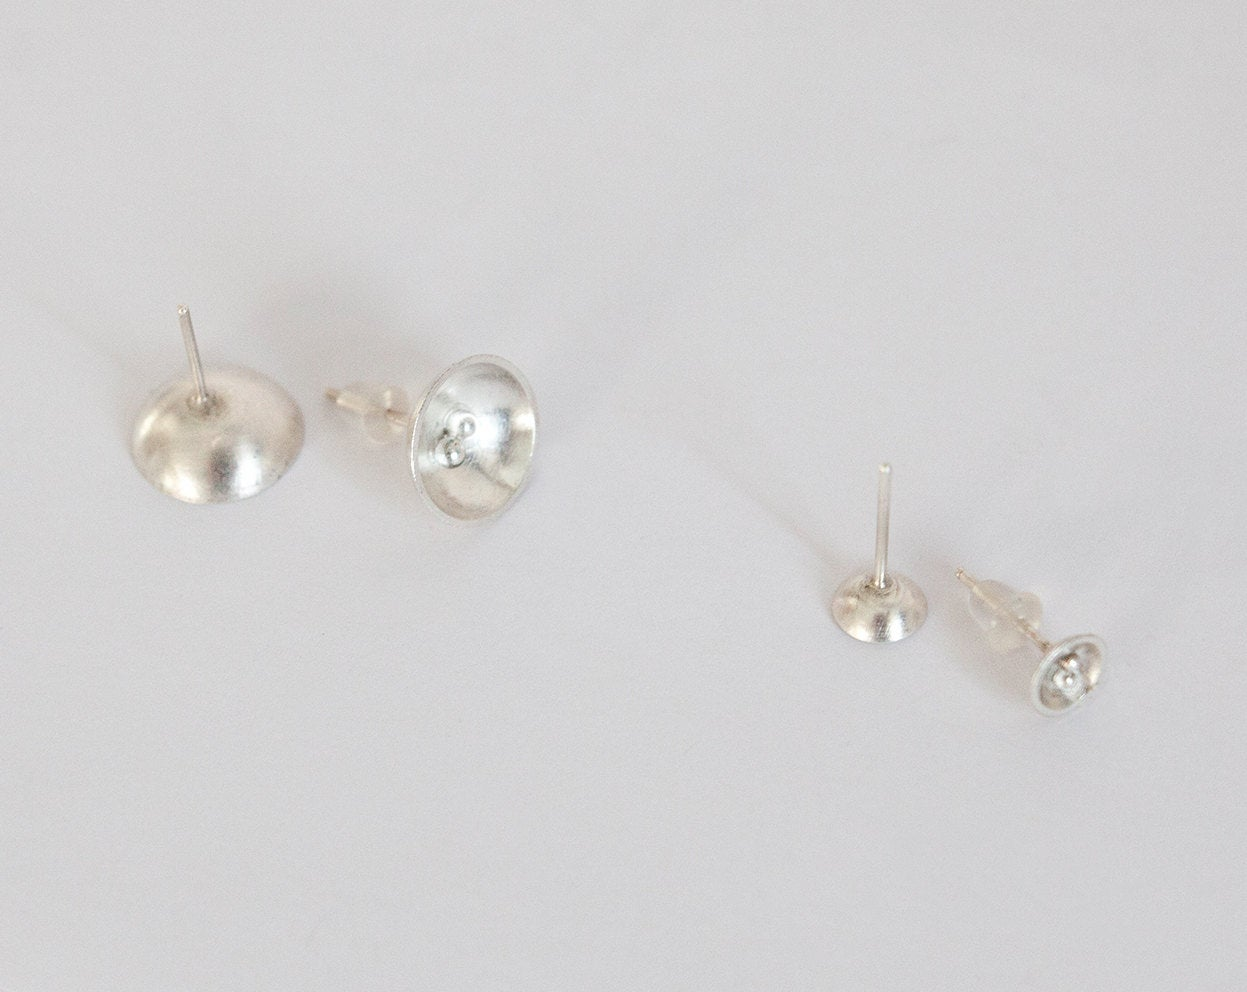 Tiny silver bowl earrings with little balls  (Ready to ship)